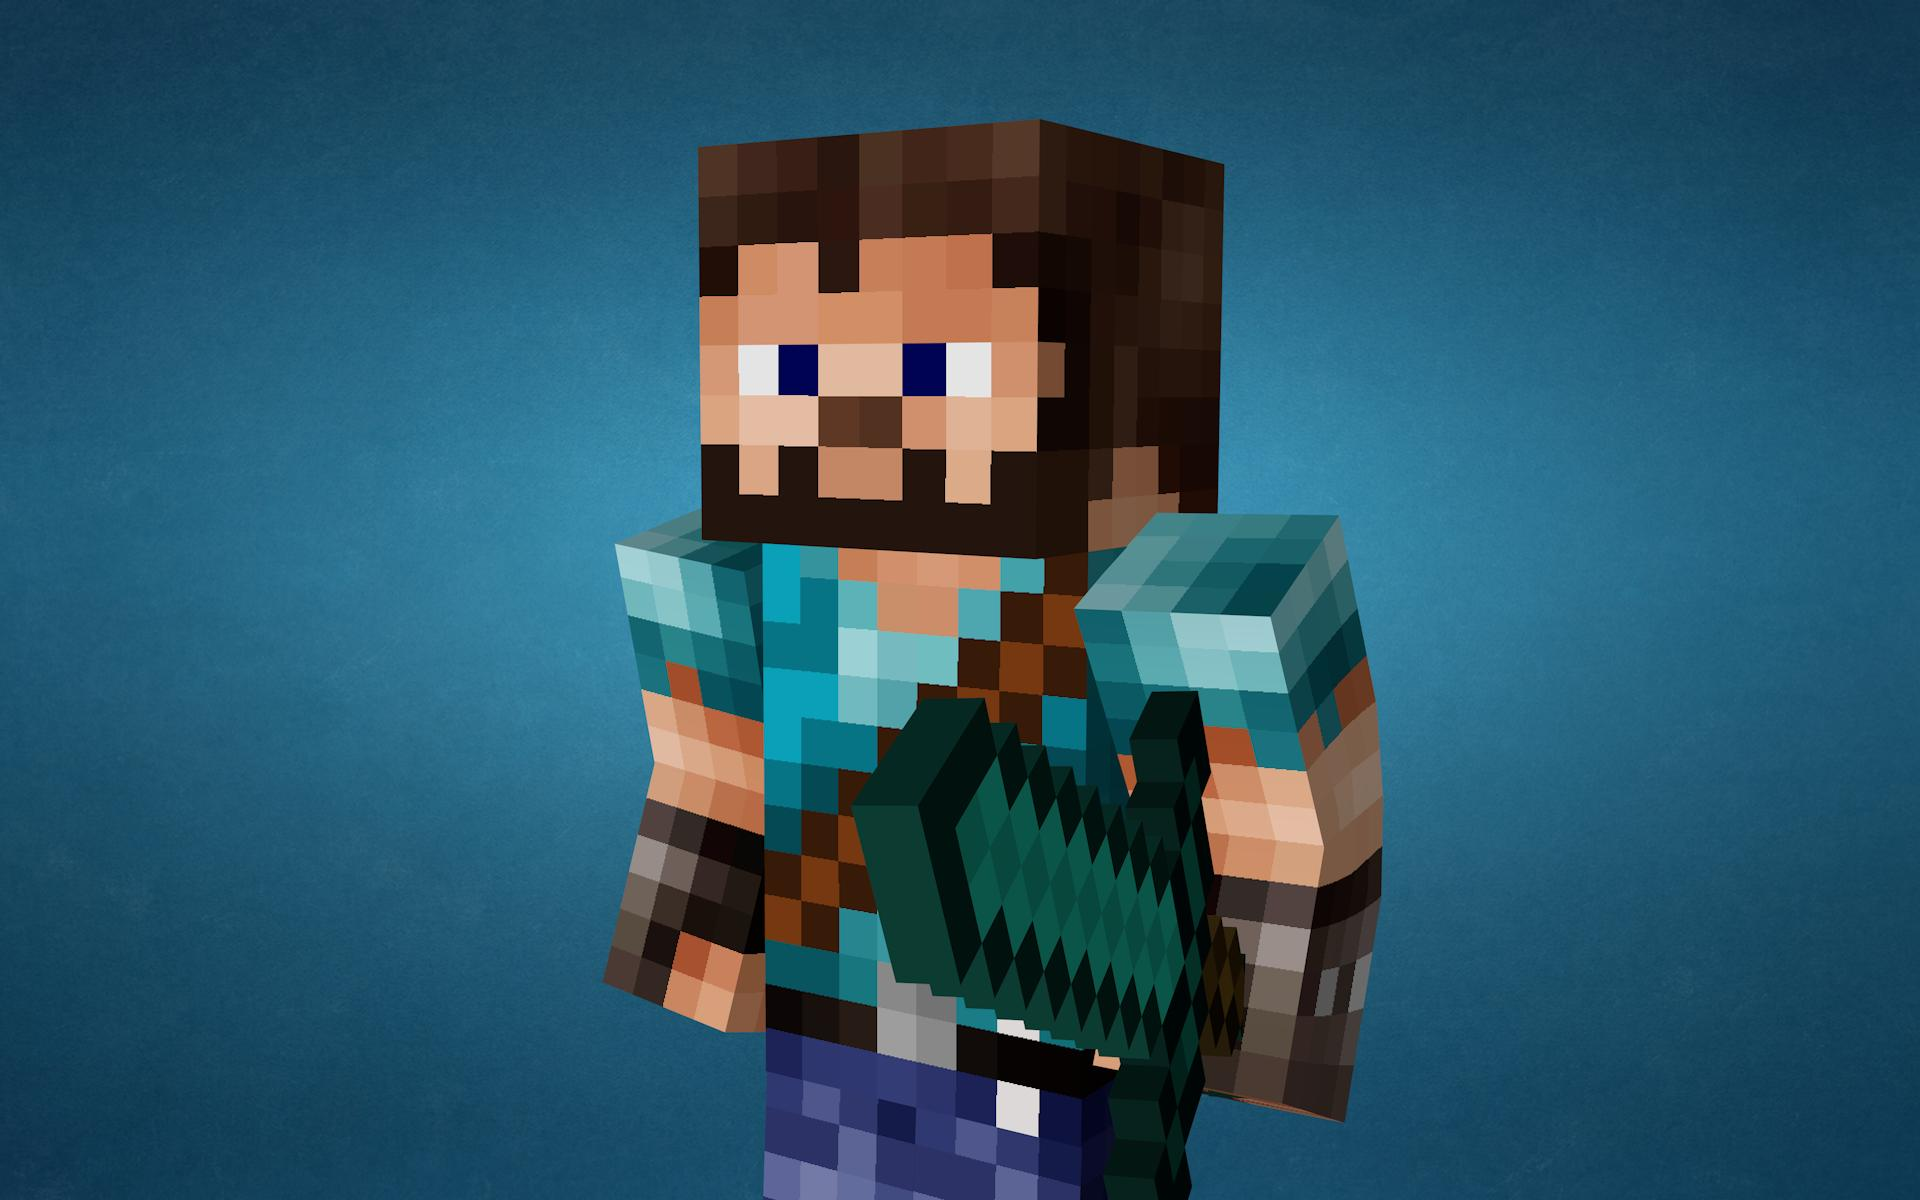 Bike Girl Live Wallpaper Download Minecraft Wallpapers With Custom Skins Gallery